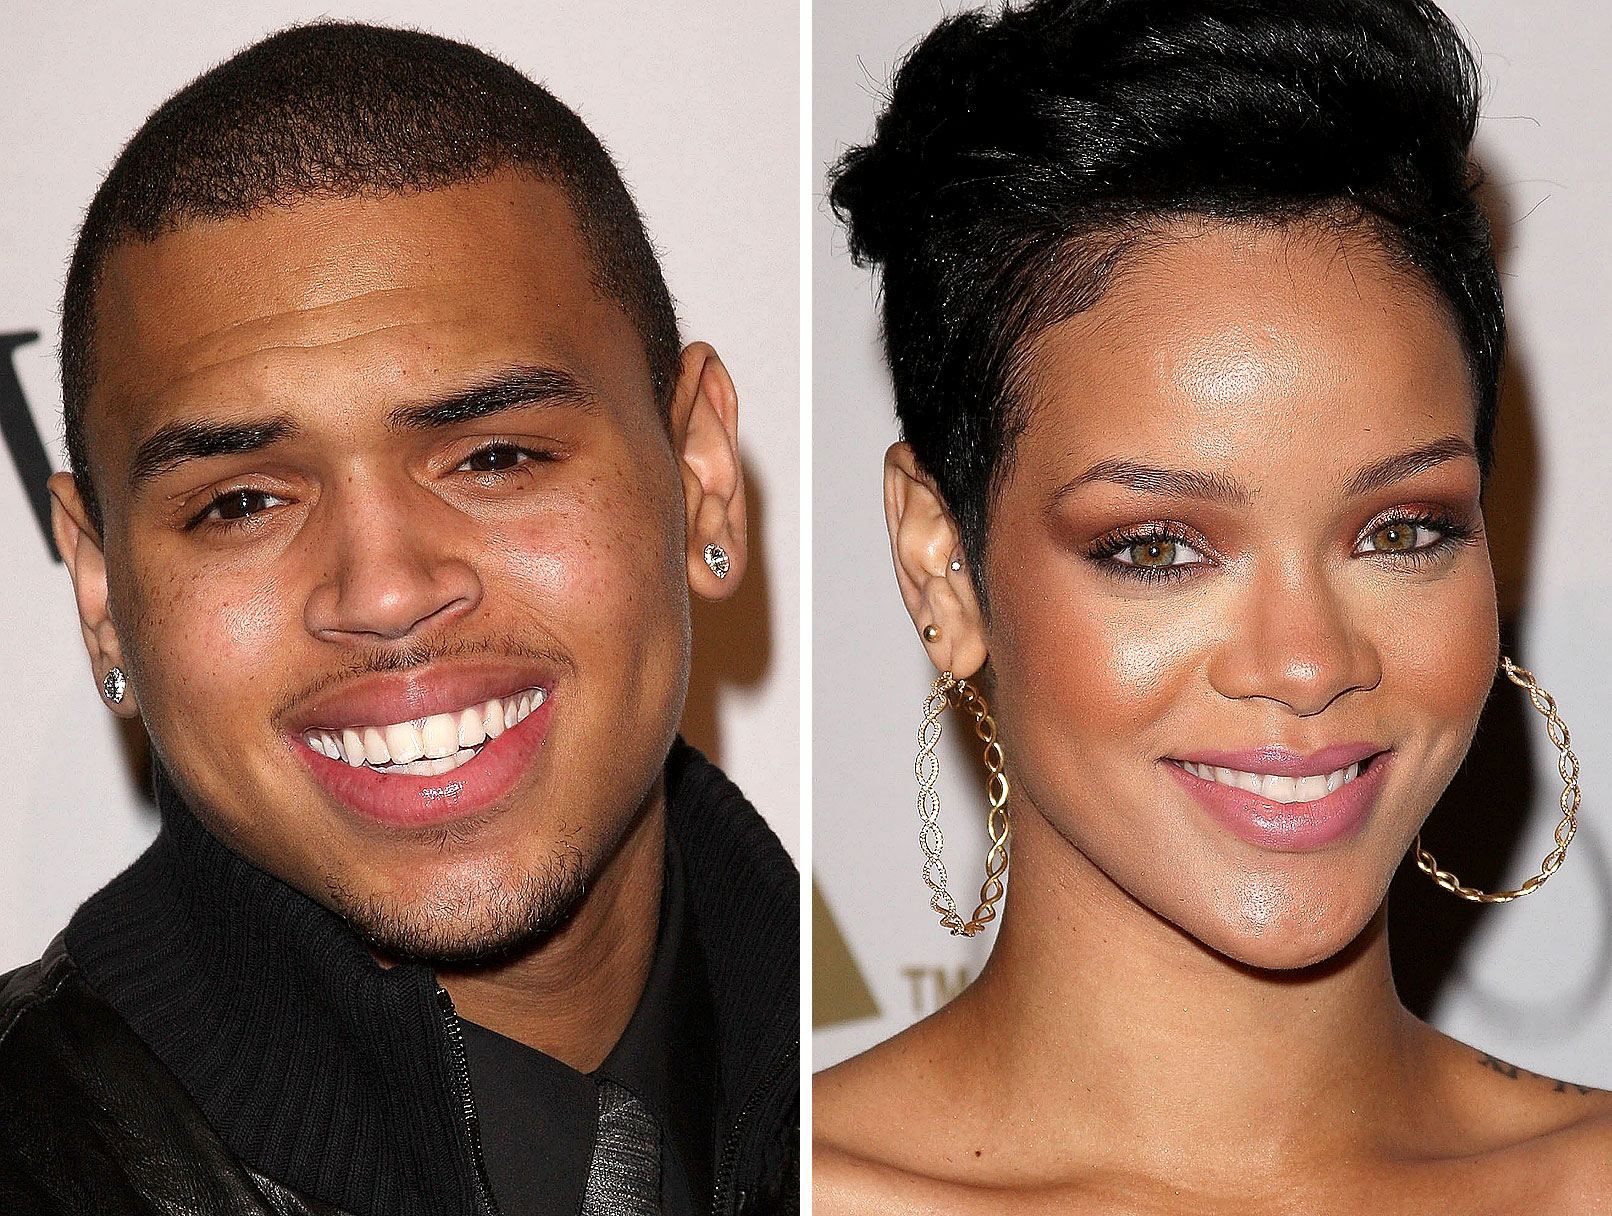 Rihanna and Chris Brown are Recording Again